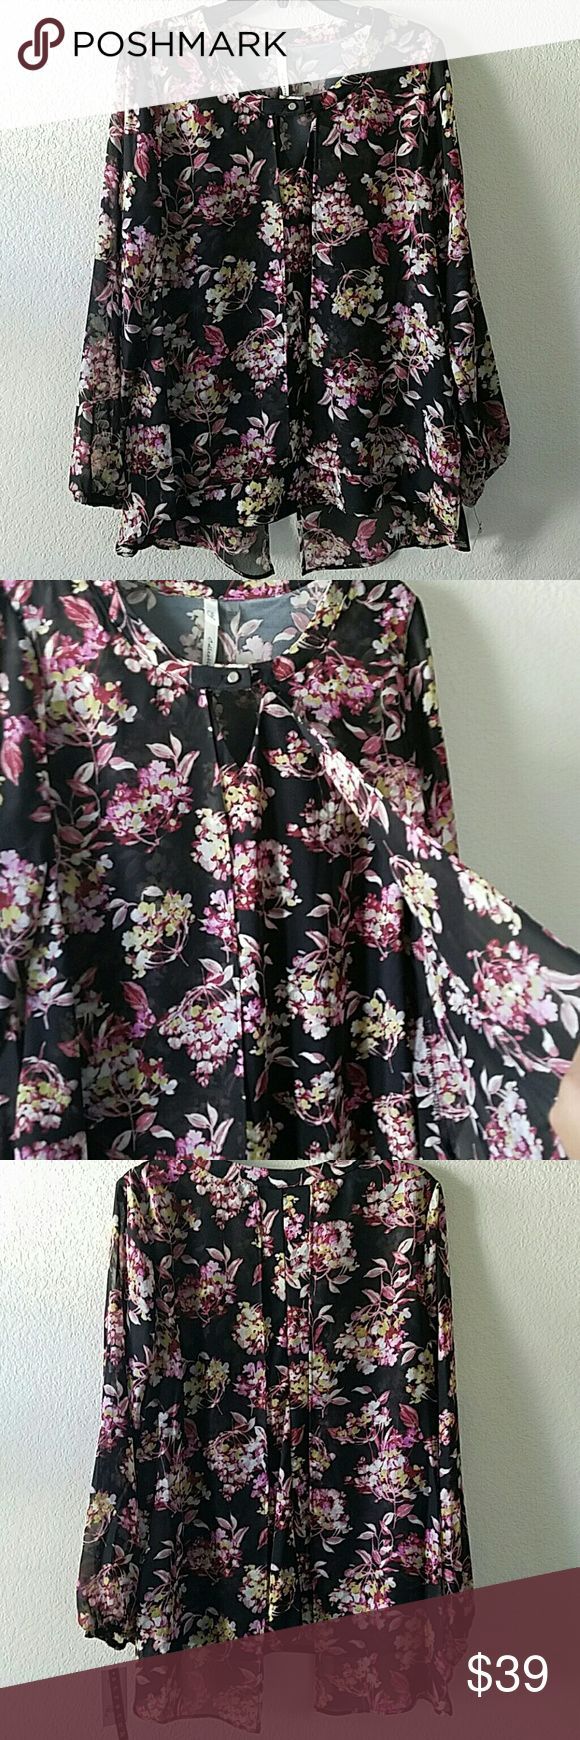 "NY Collection Floral Blouse Beautiful brand new with tag NY Collection Floral Blouse. Shell: 100% polyester Combo: 95% polyester 5% spandex. No stains or damages. Approx L of top 27"". Armpit to armpit approx without stretching 21"". Black with pink and yellow mix flowers. NY Collection Tops"